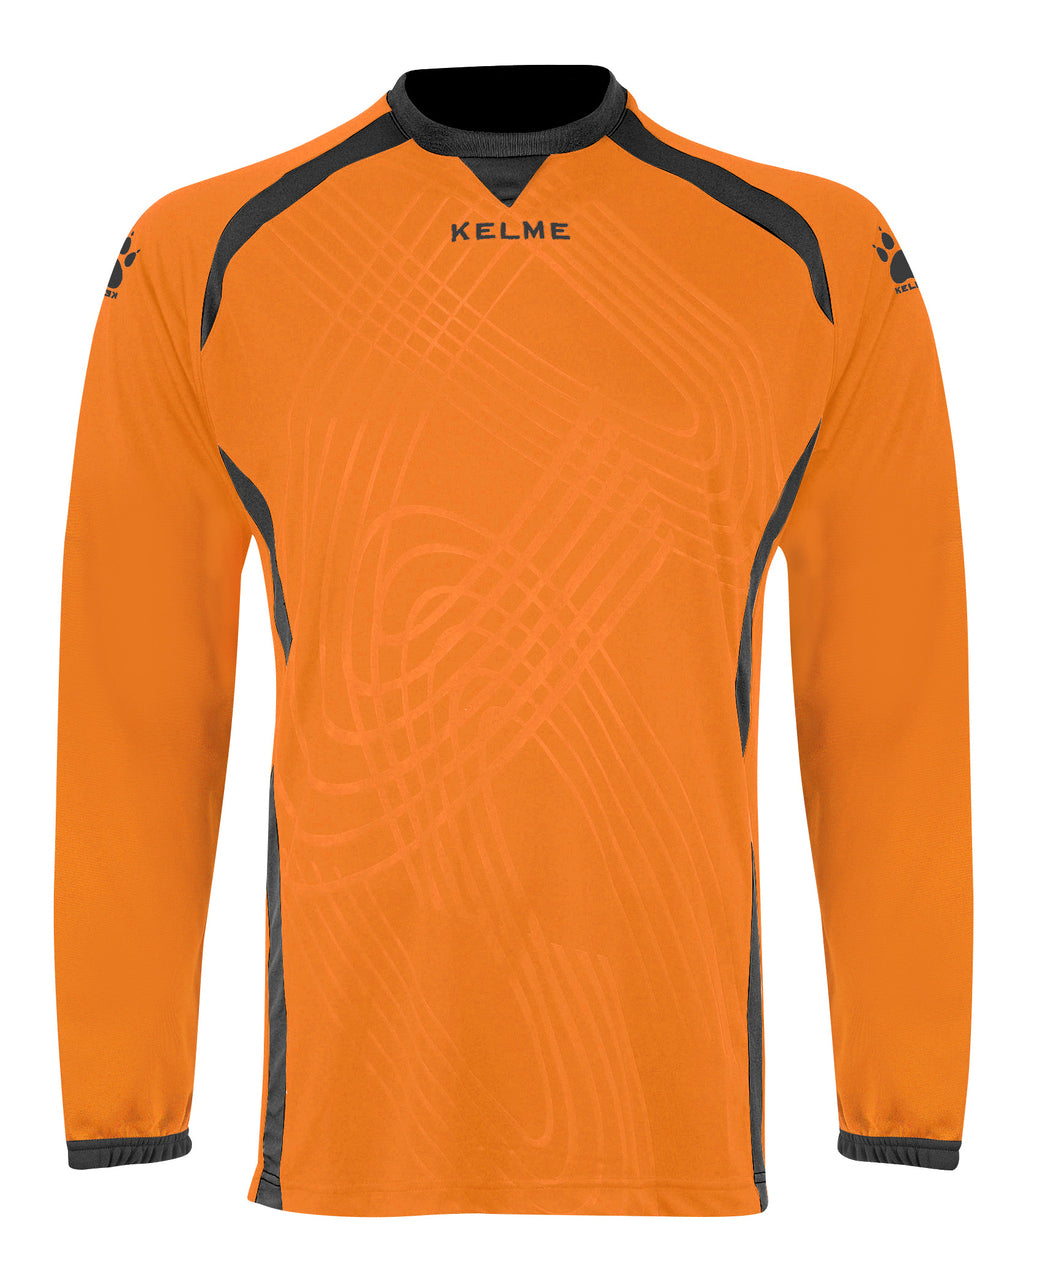 Kelme Attack Orange Goalkeeper Jersey - Adult